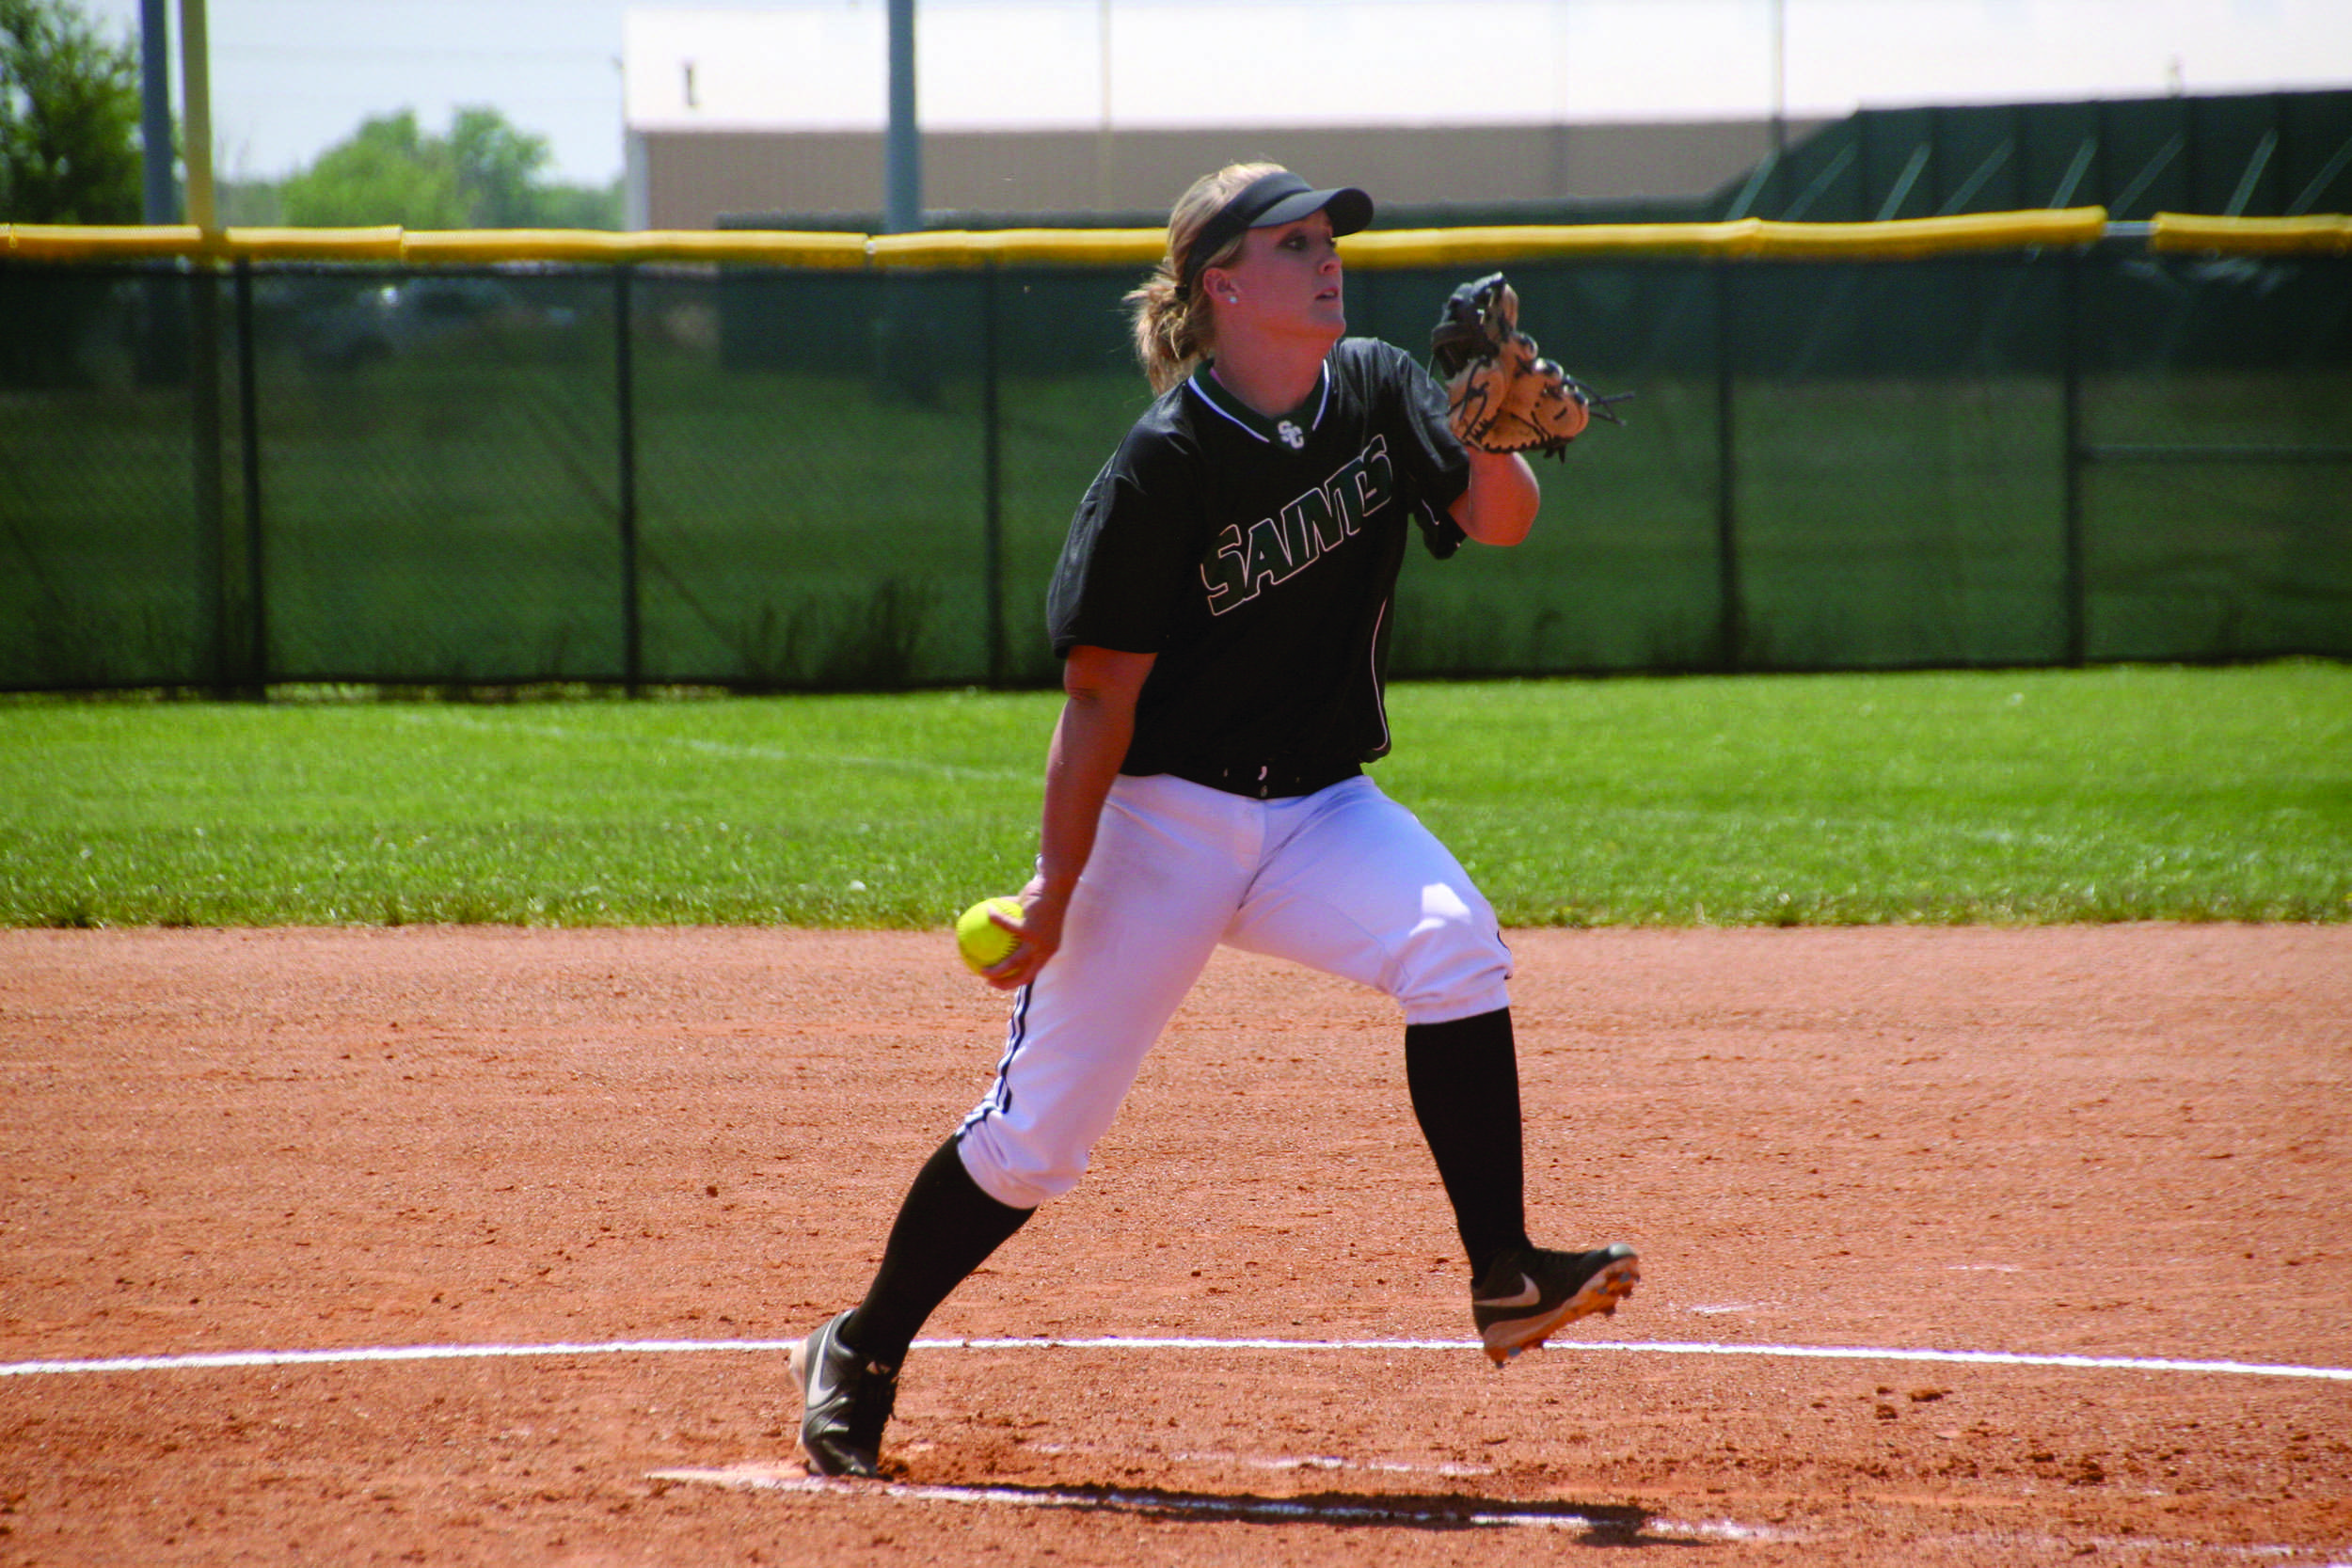 Alexa O'Brien – First in Seward history to throw a perfect game